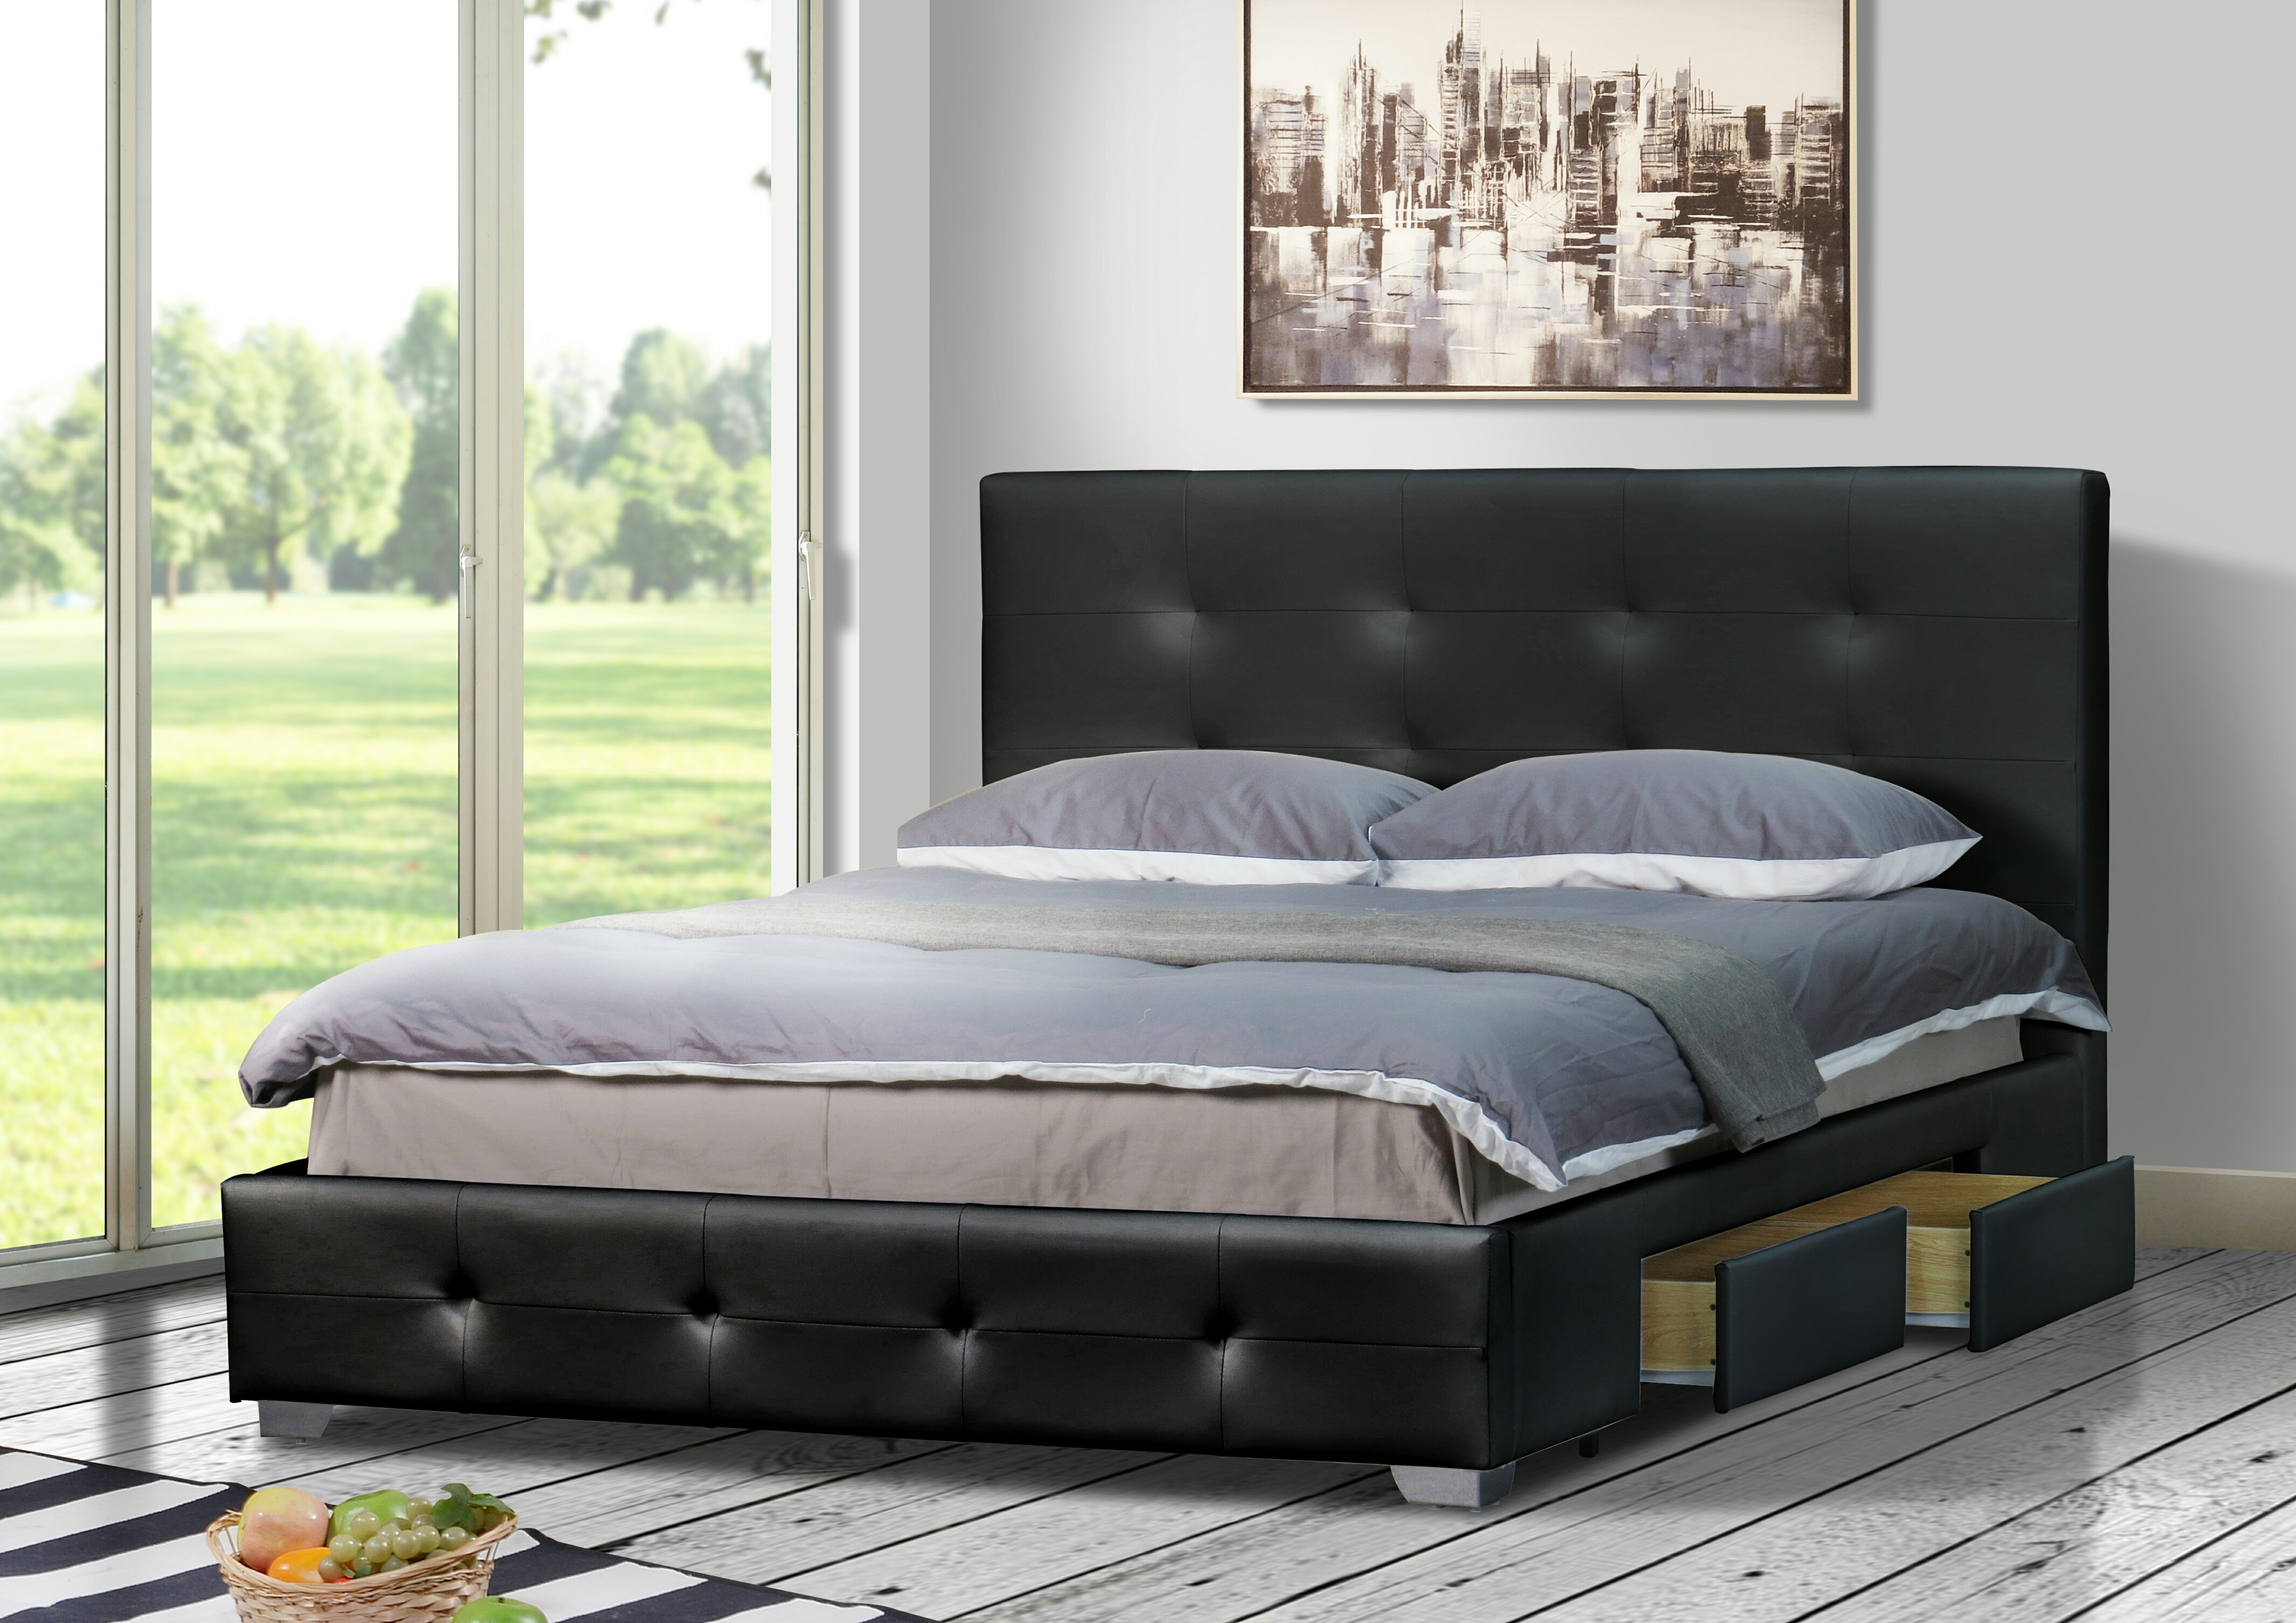 Online Discount Beds On Sale Perth Bed Shops And Stores